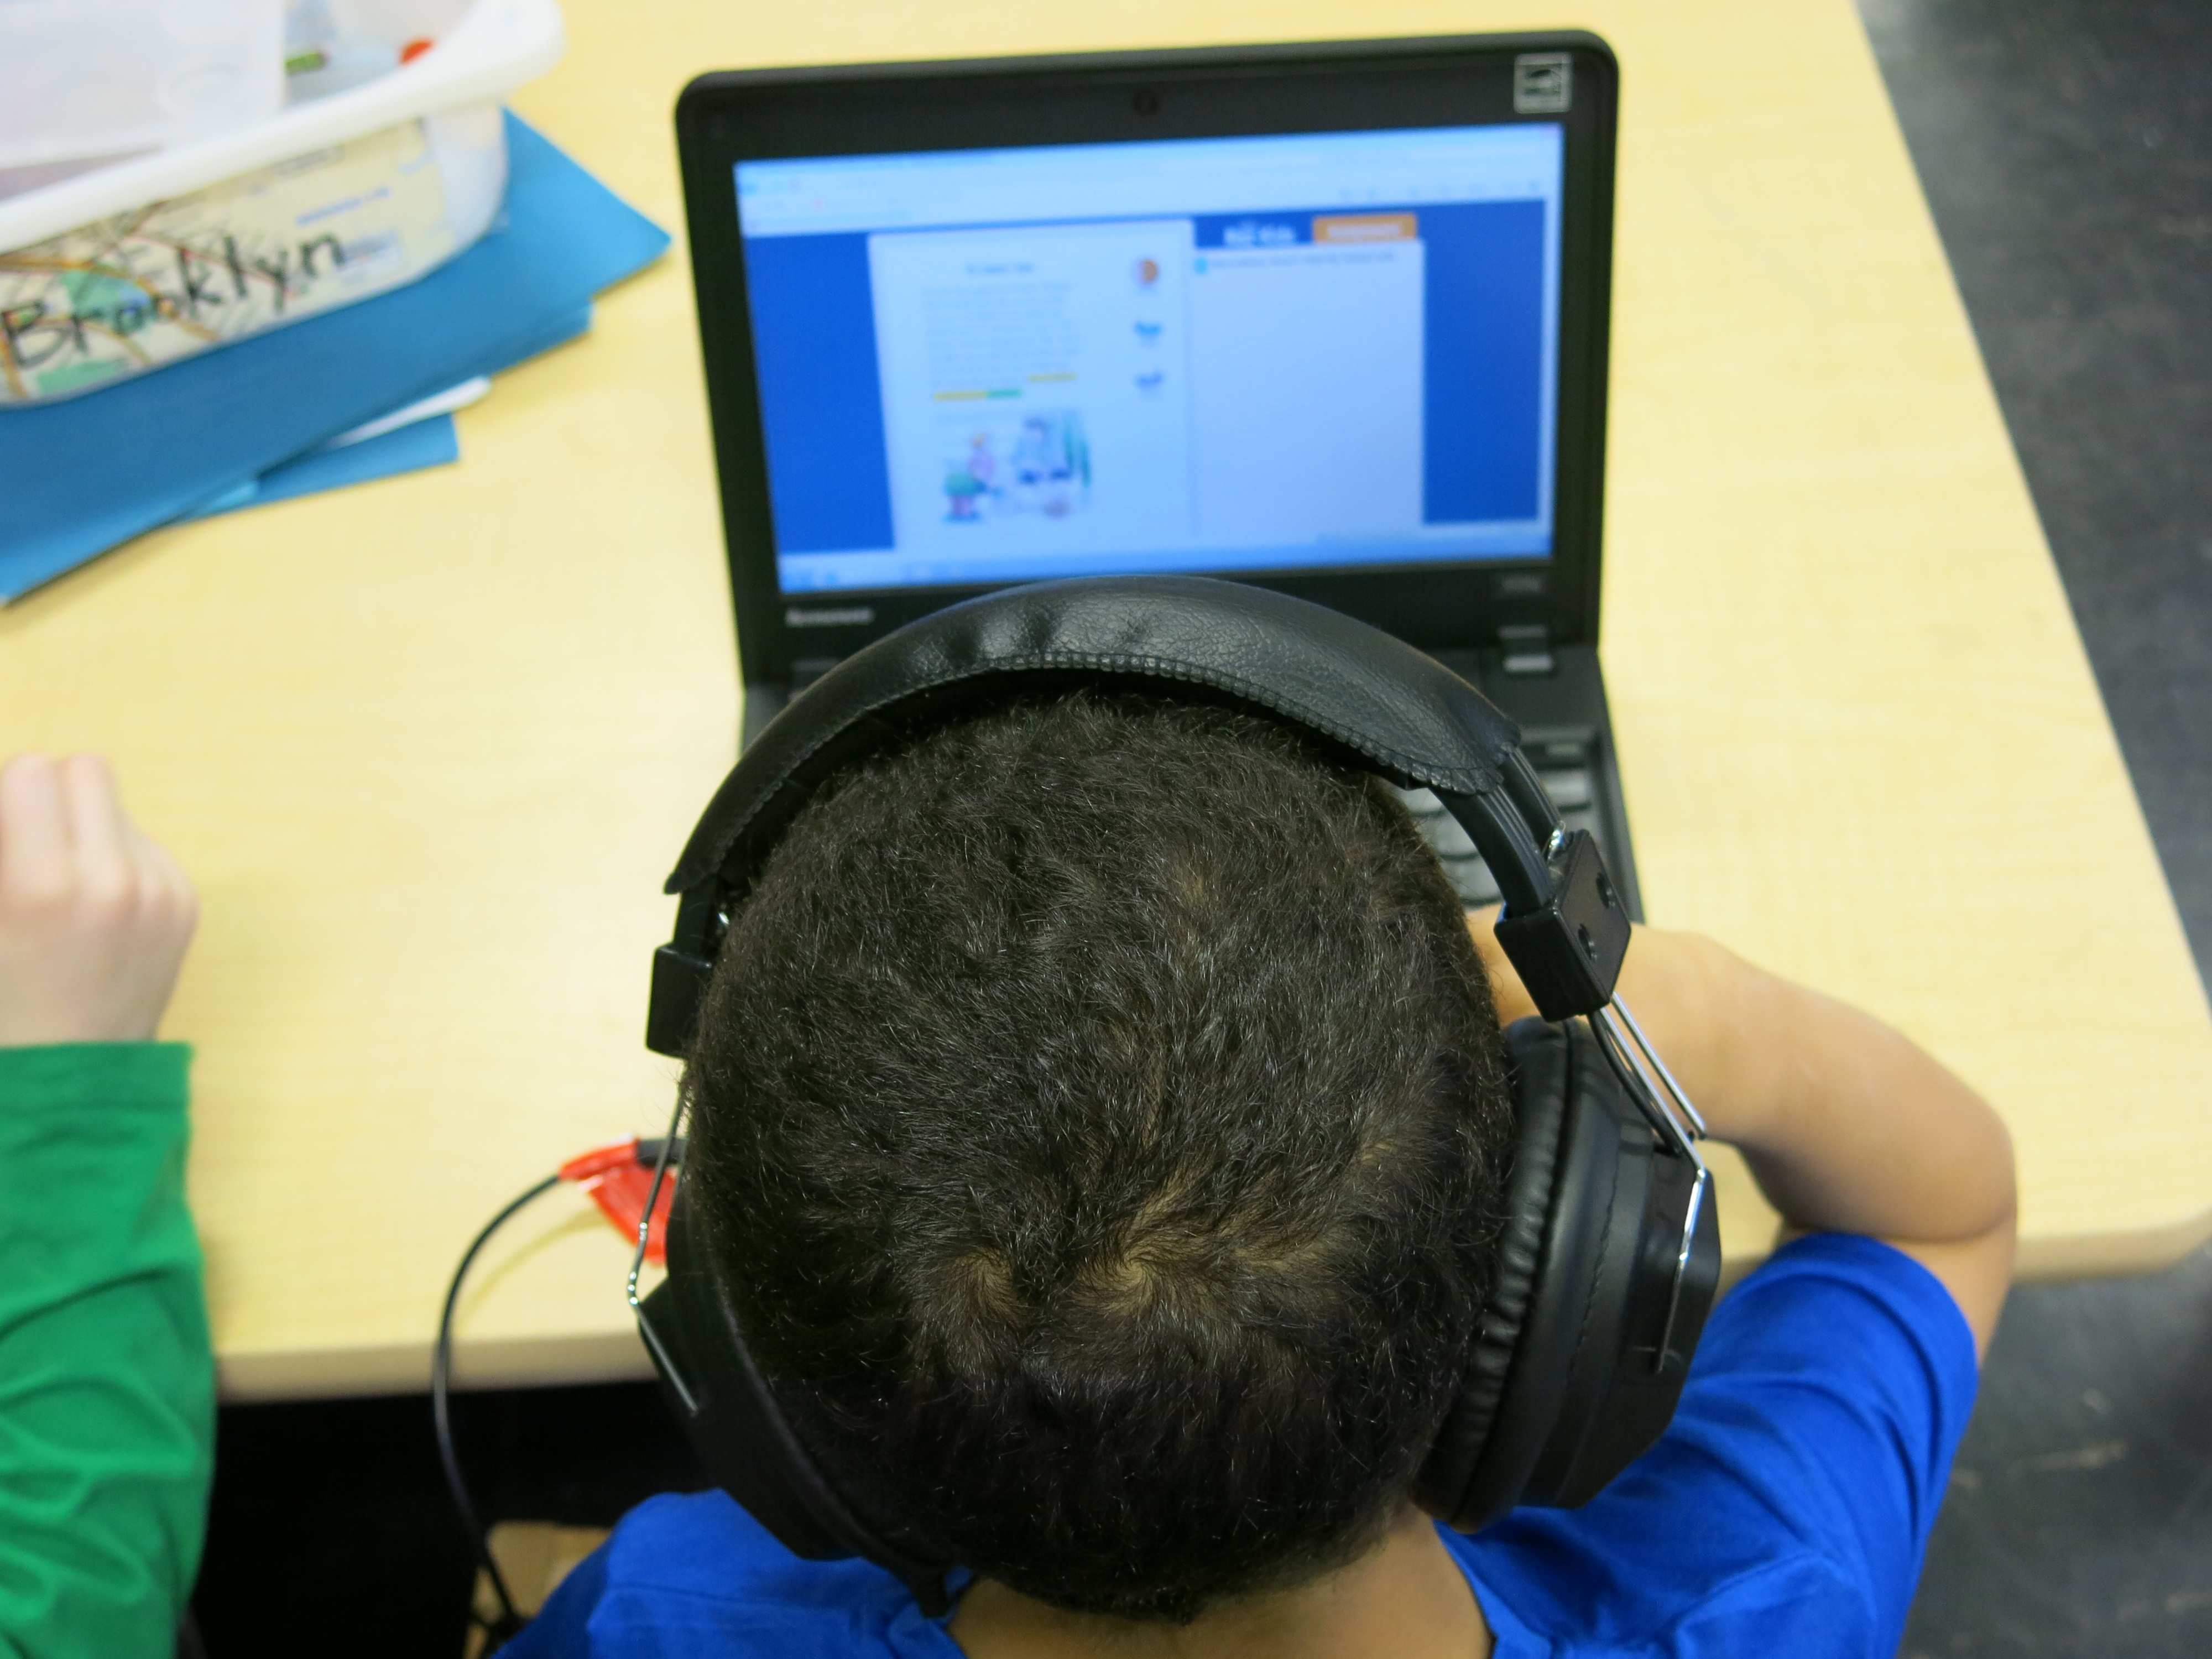 A young student wearing headphones and working on a laptop.